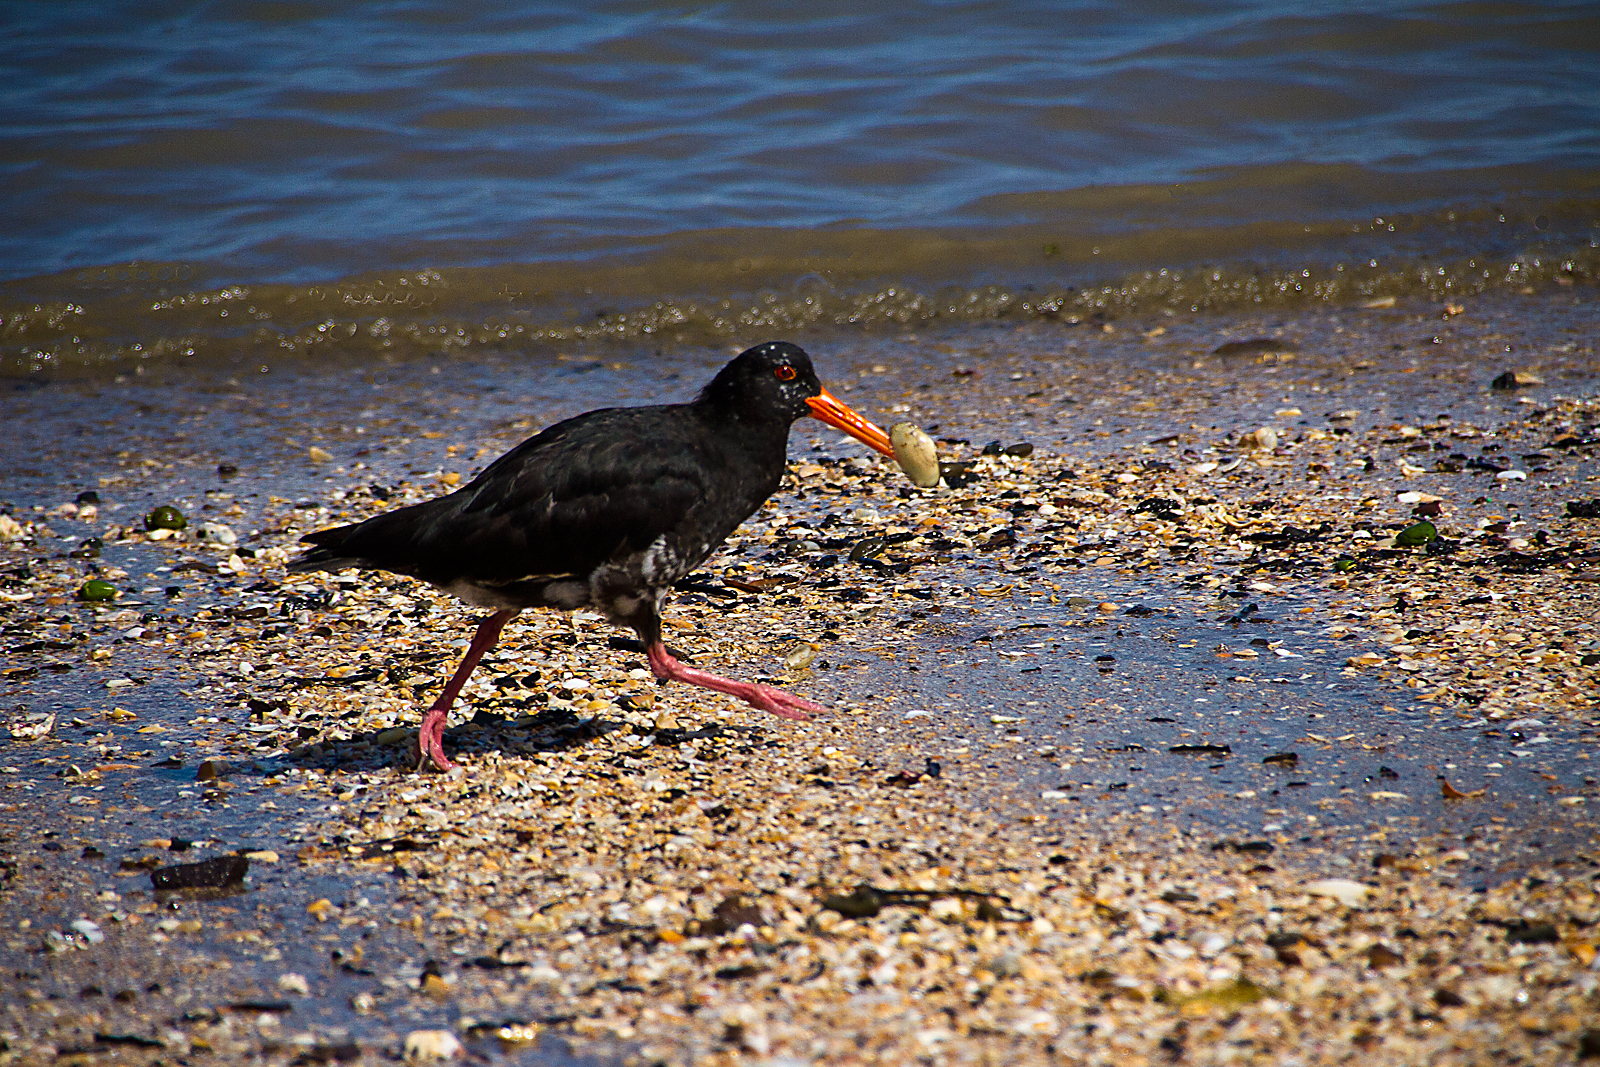 oyster-catcher-with-clam-by-alan-goldby